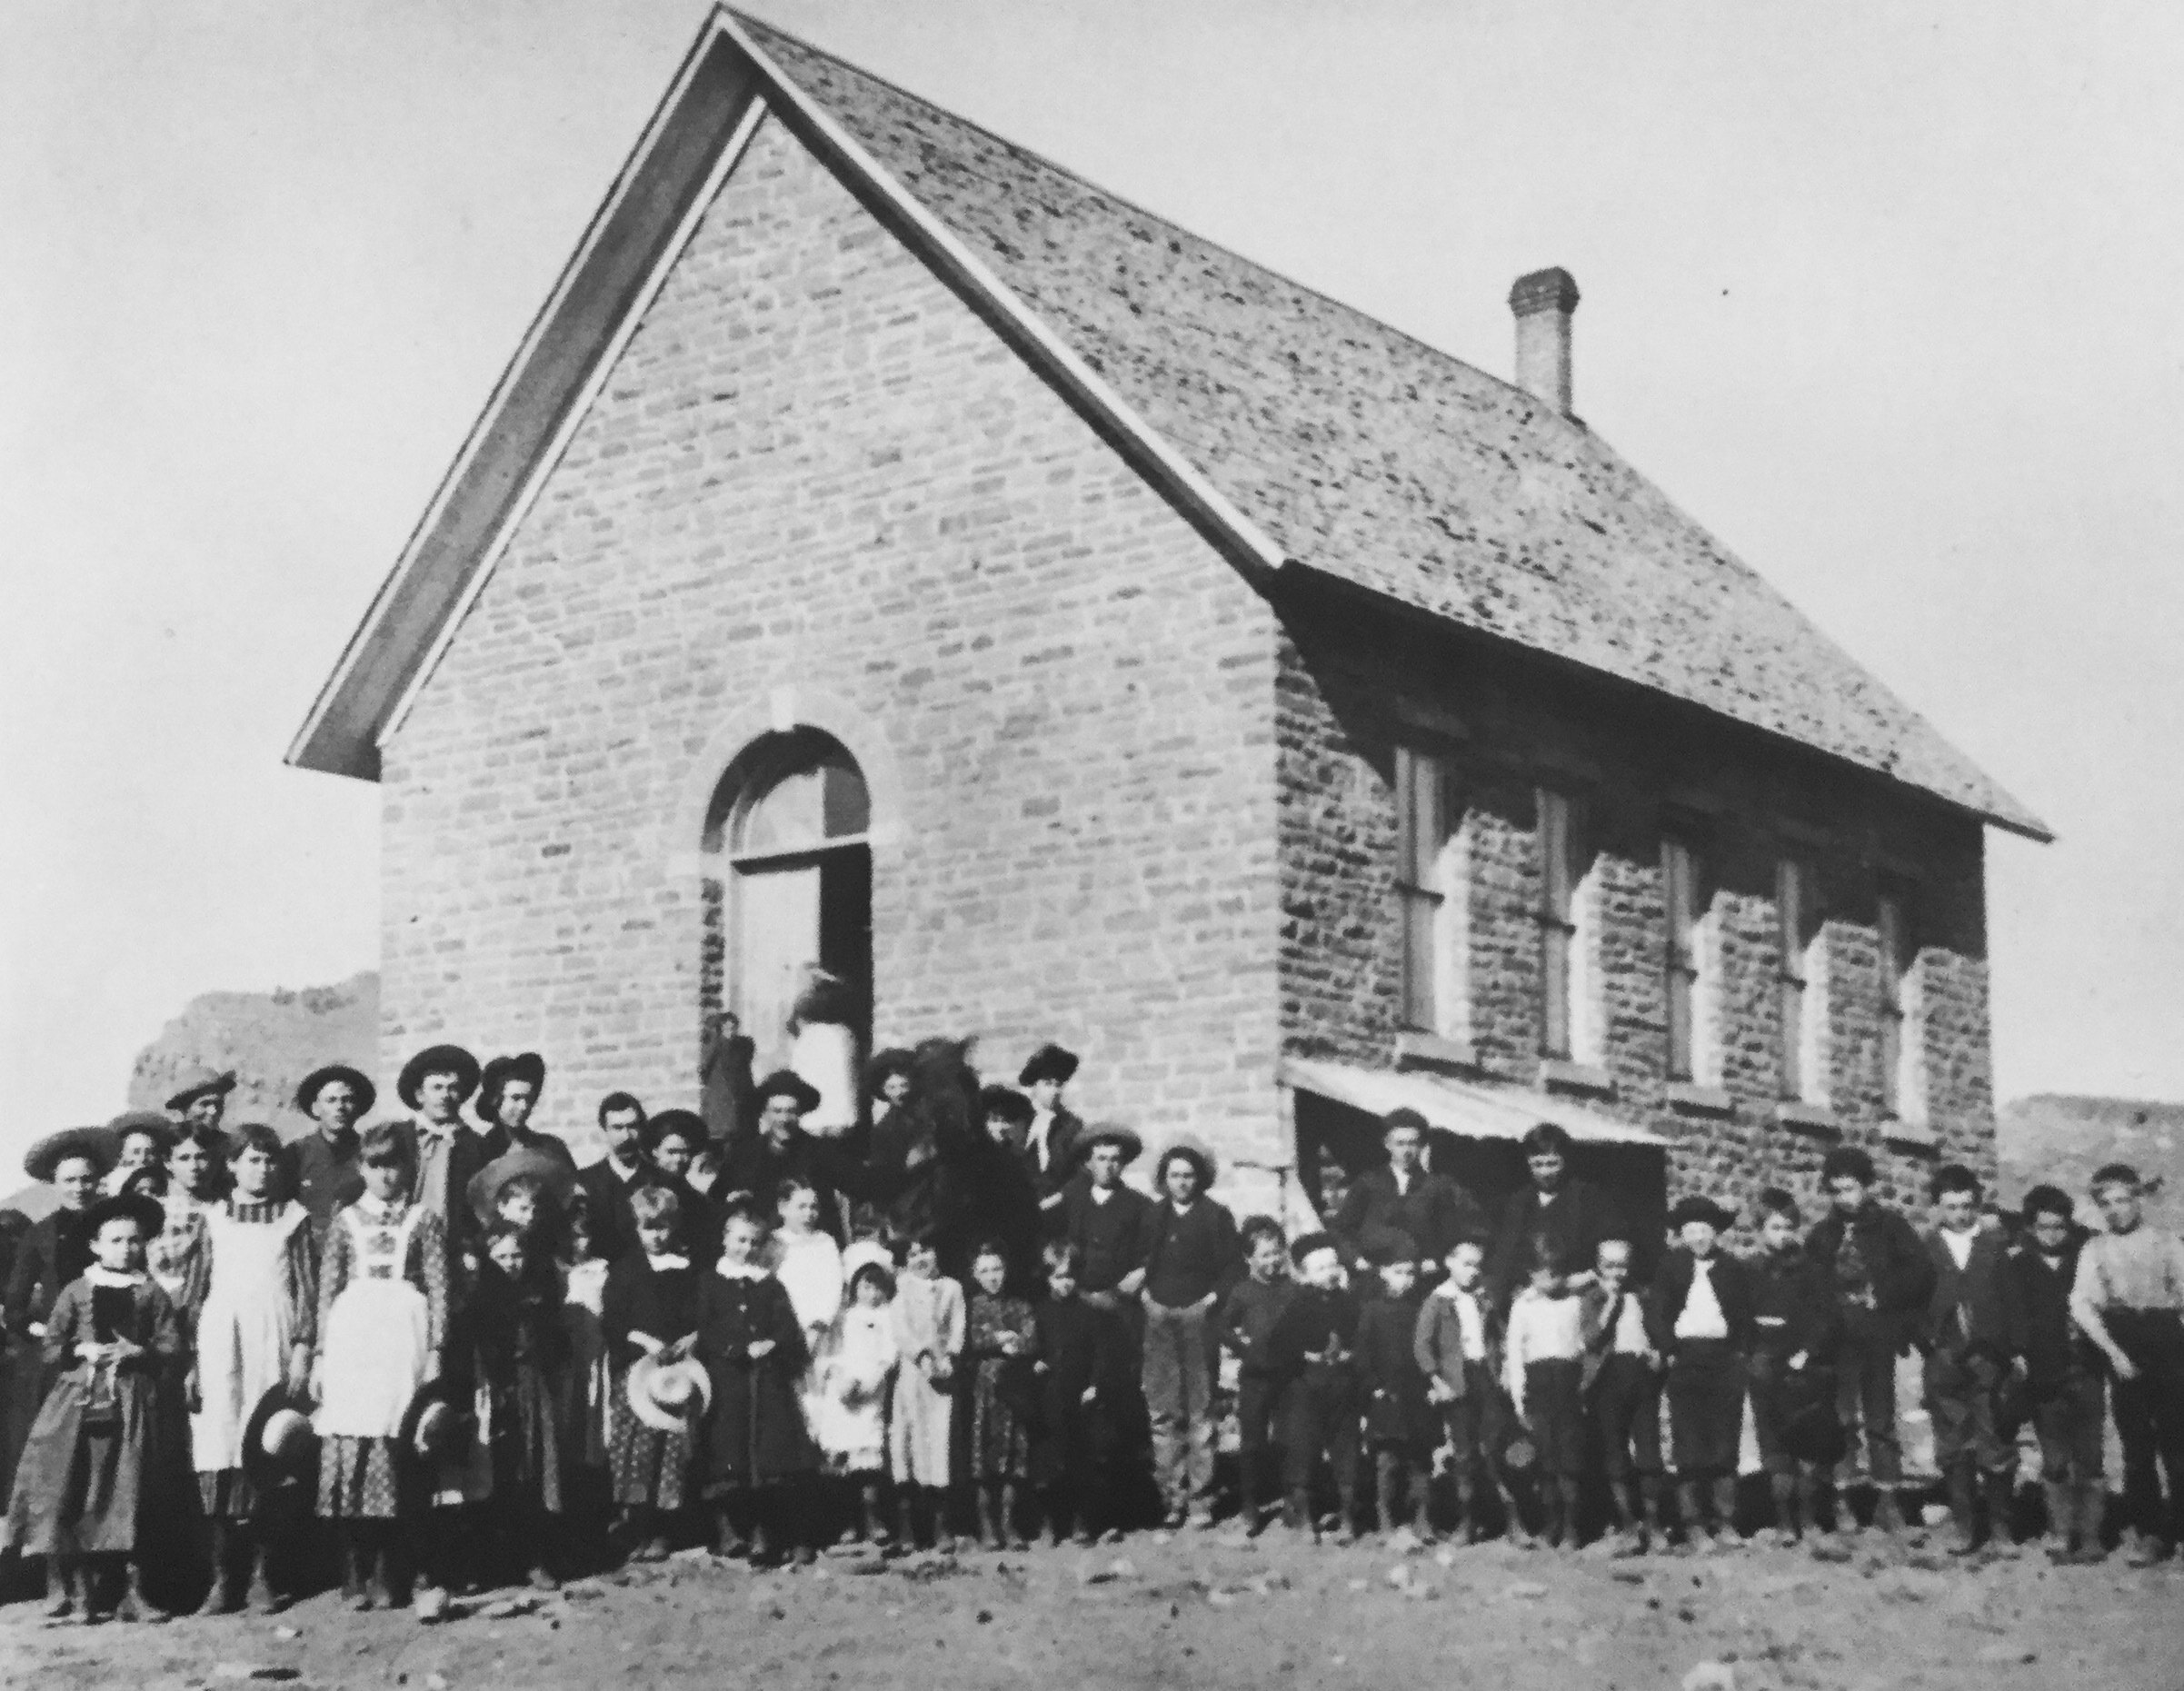 Photo of the schoolhouse in 1885. 